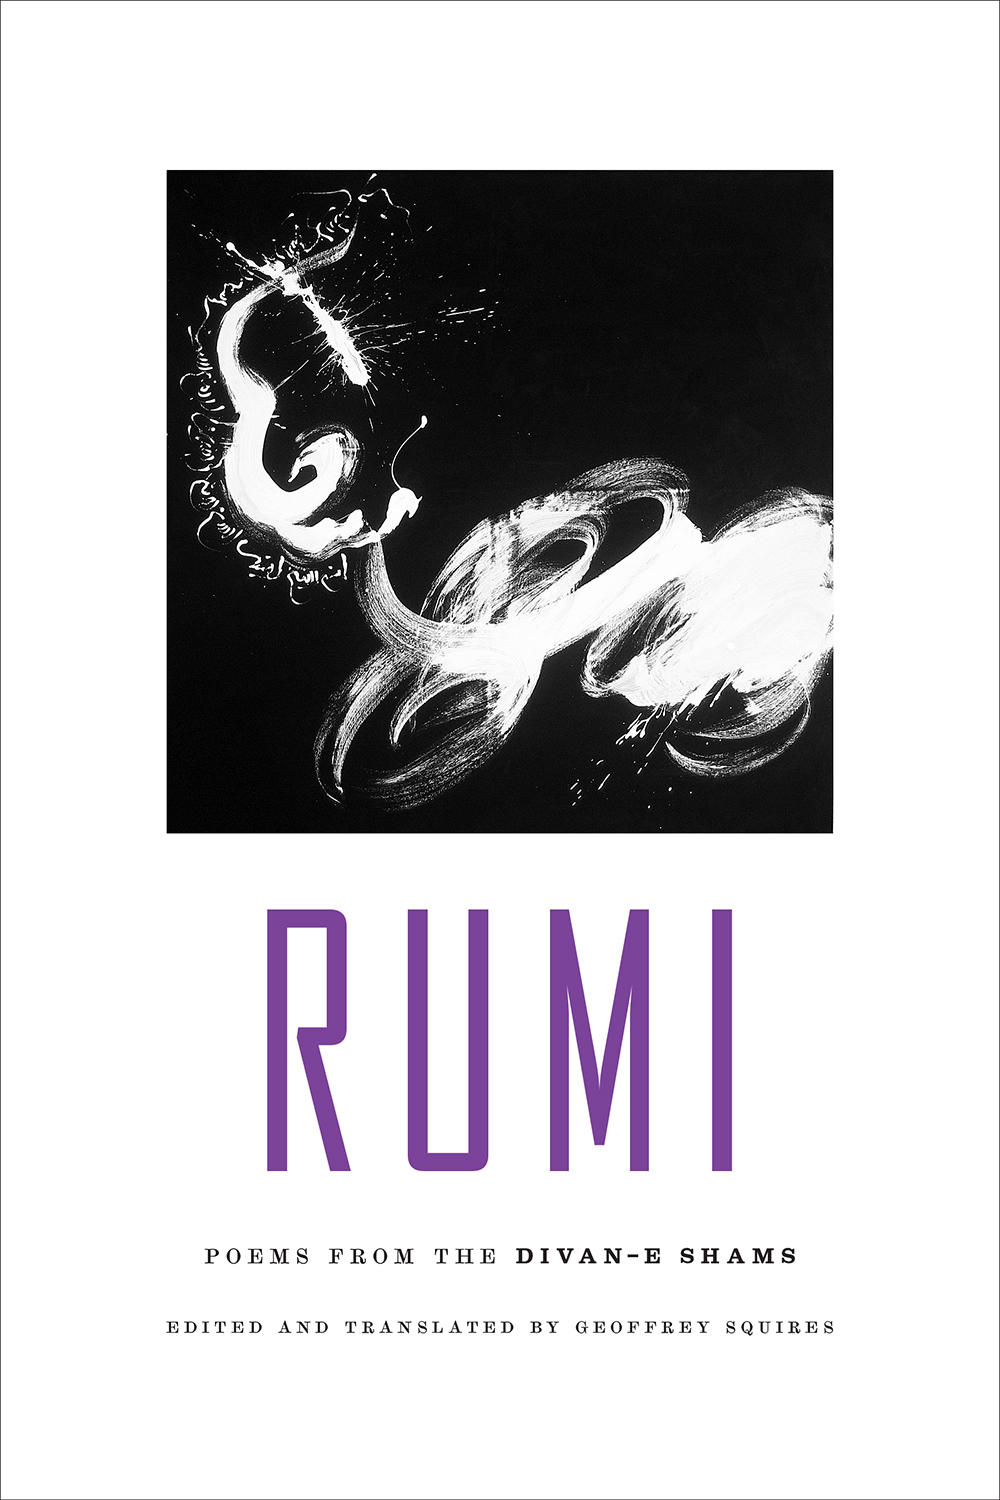 Rumi: Poems from the Divan-E Shams